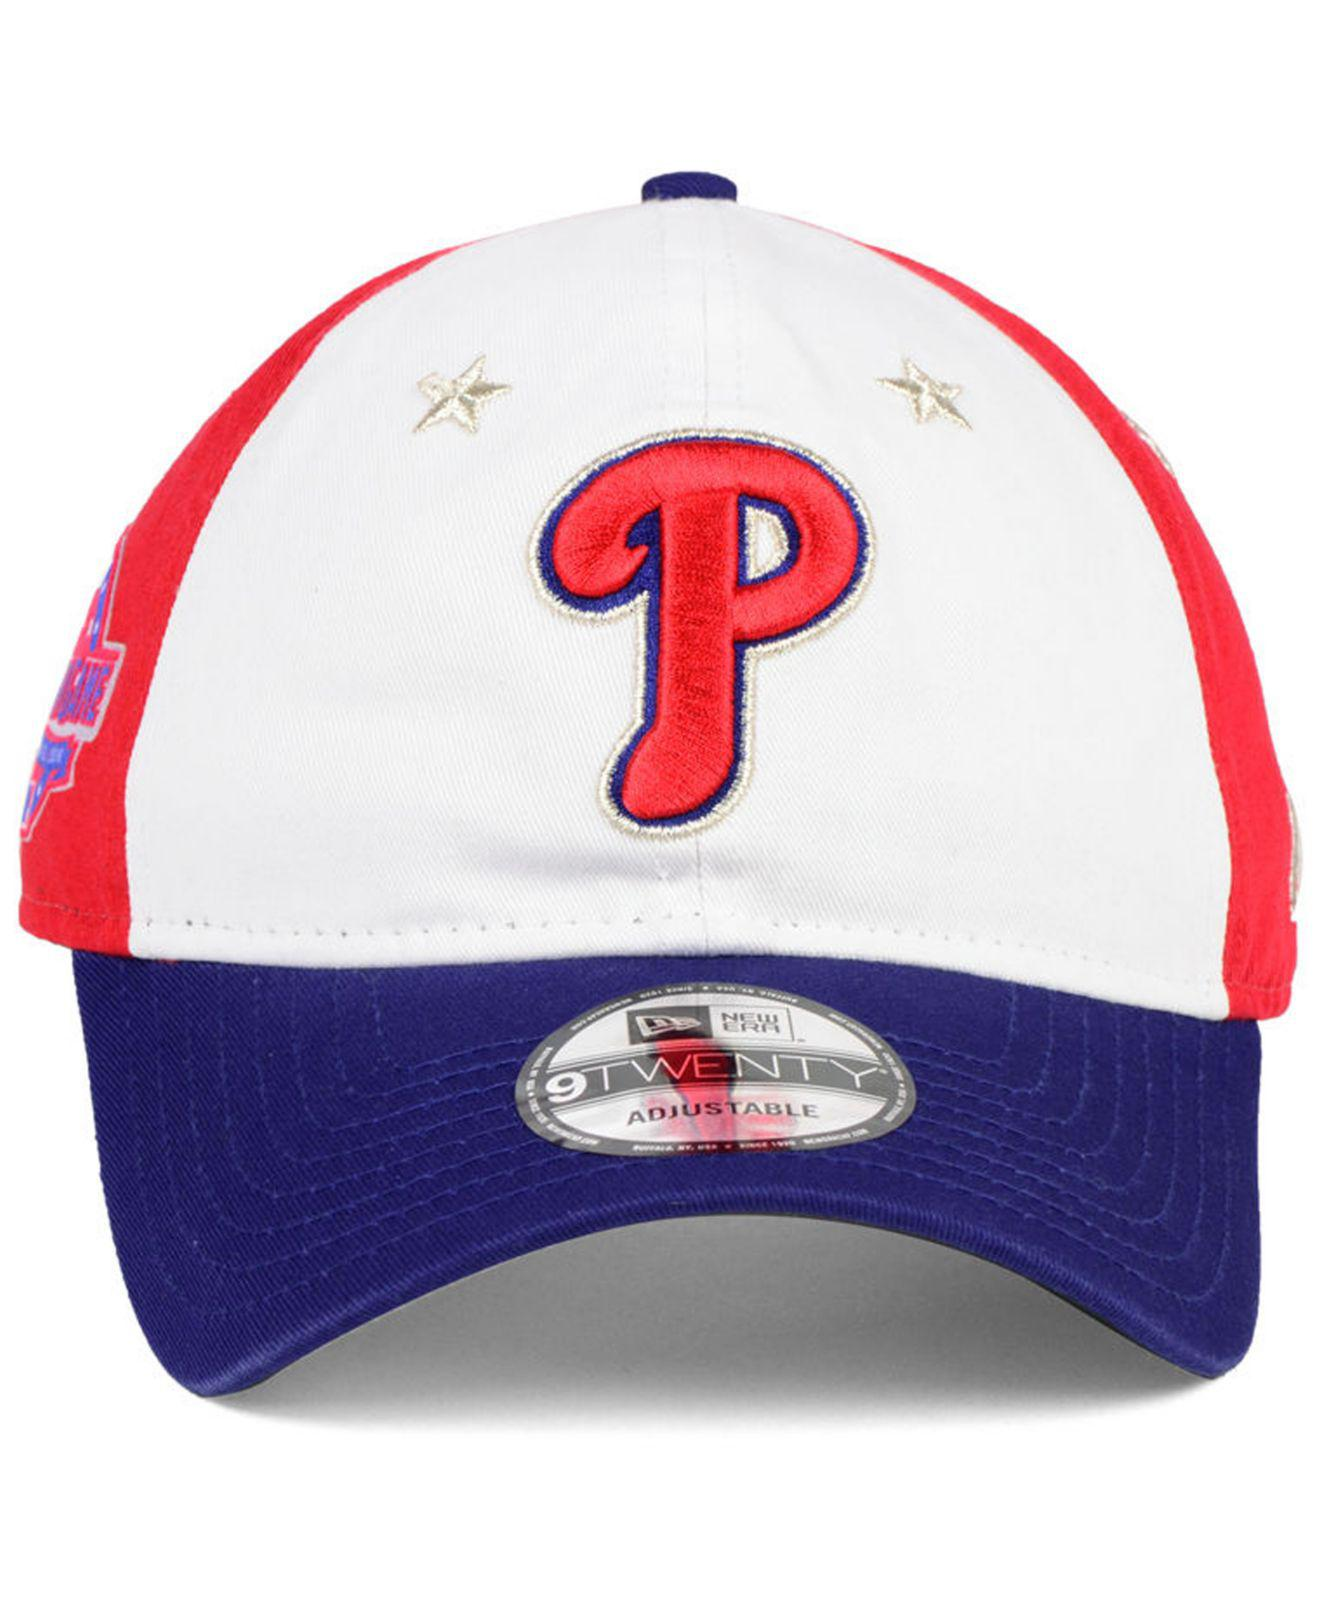 ... usa lyst ktz philadelphia phillies all star game 9twenty strapback cap  2018 for men 9f738 56737 b66906156727